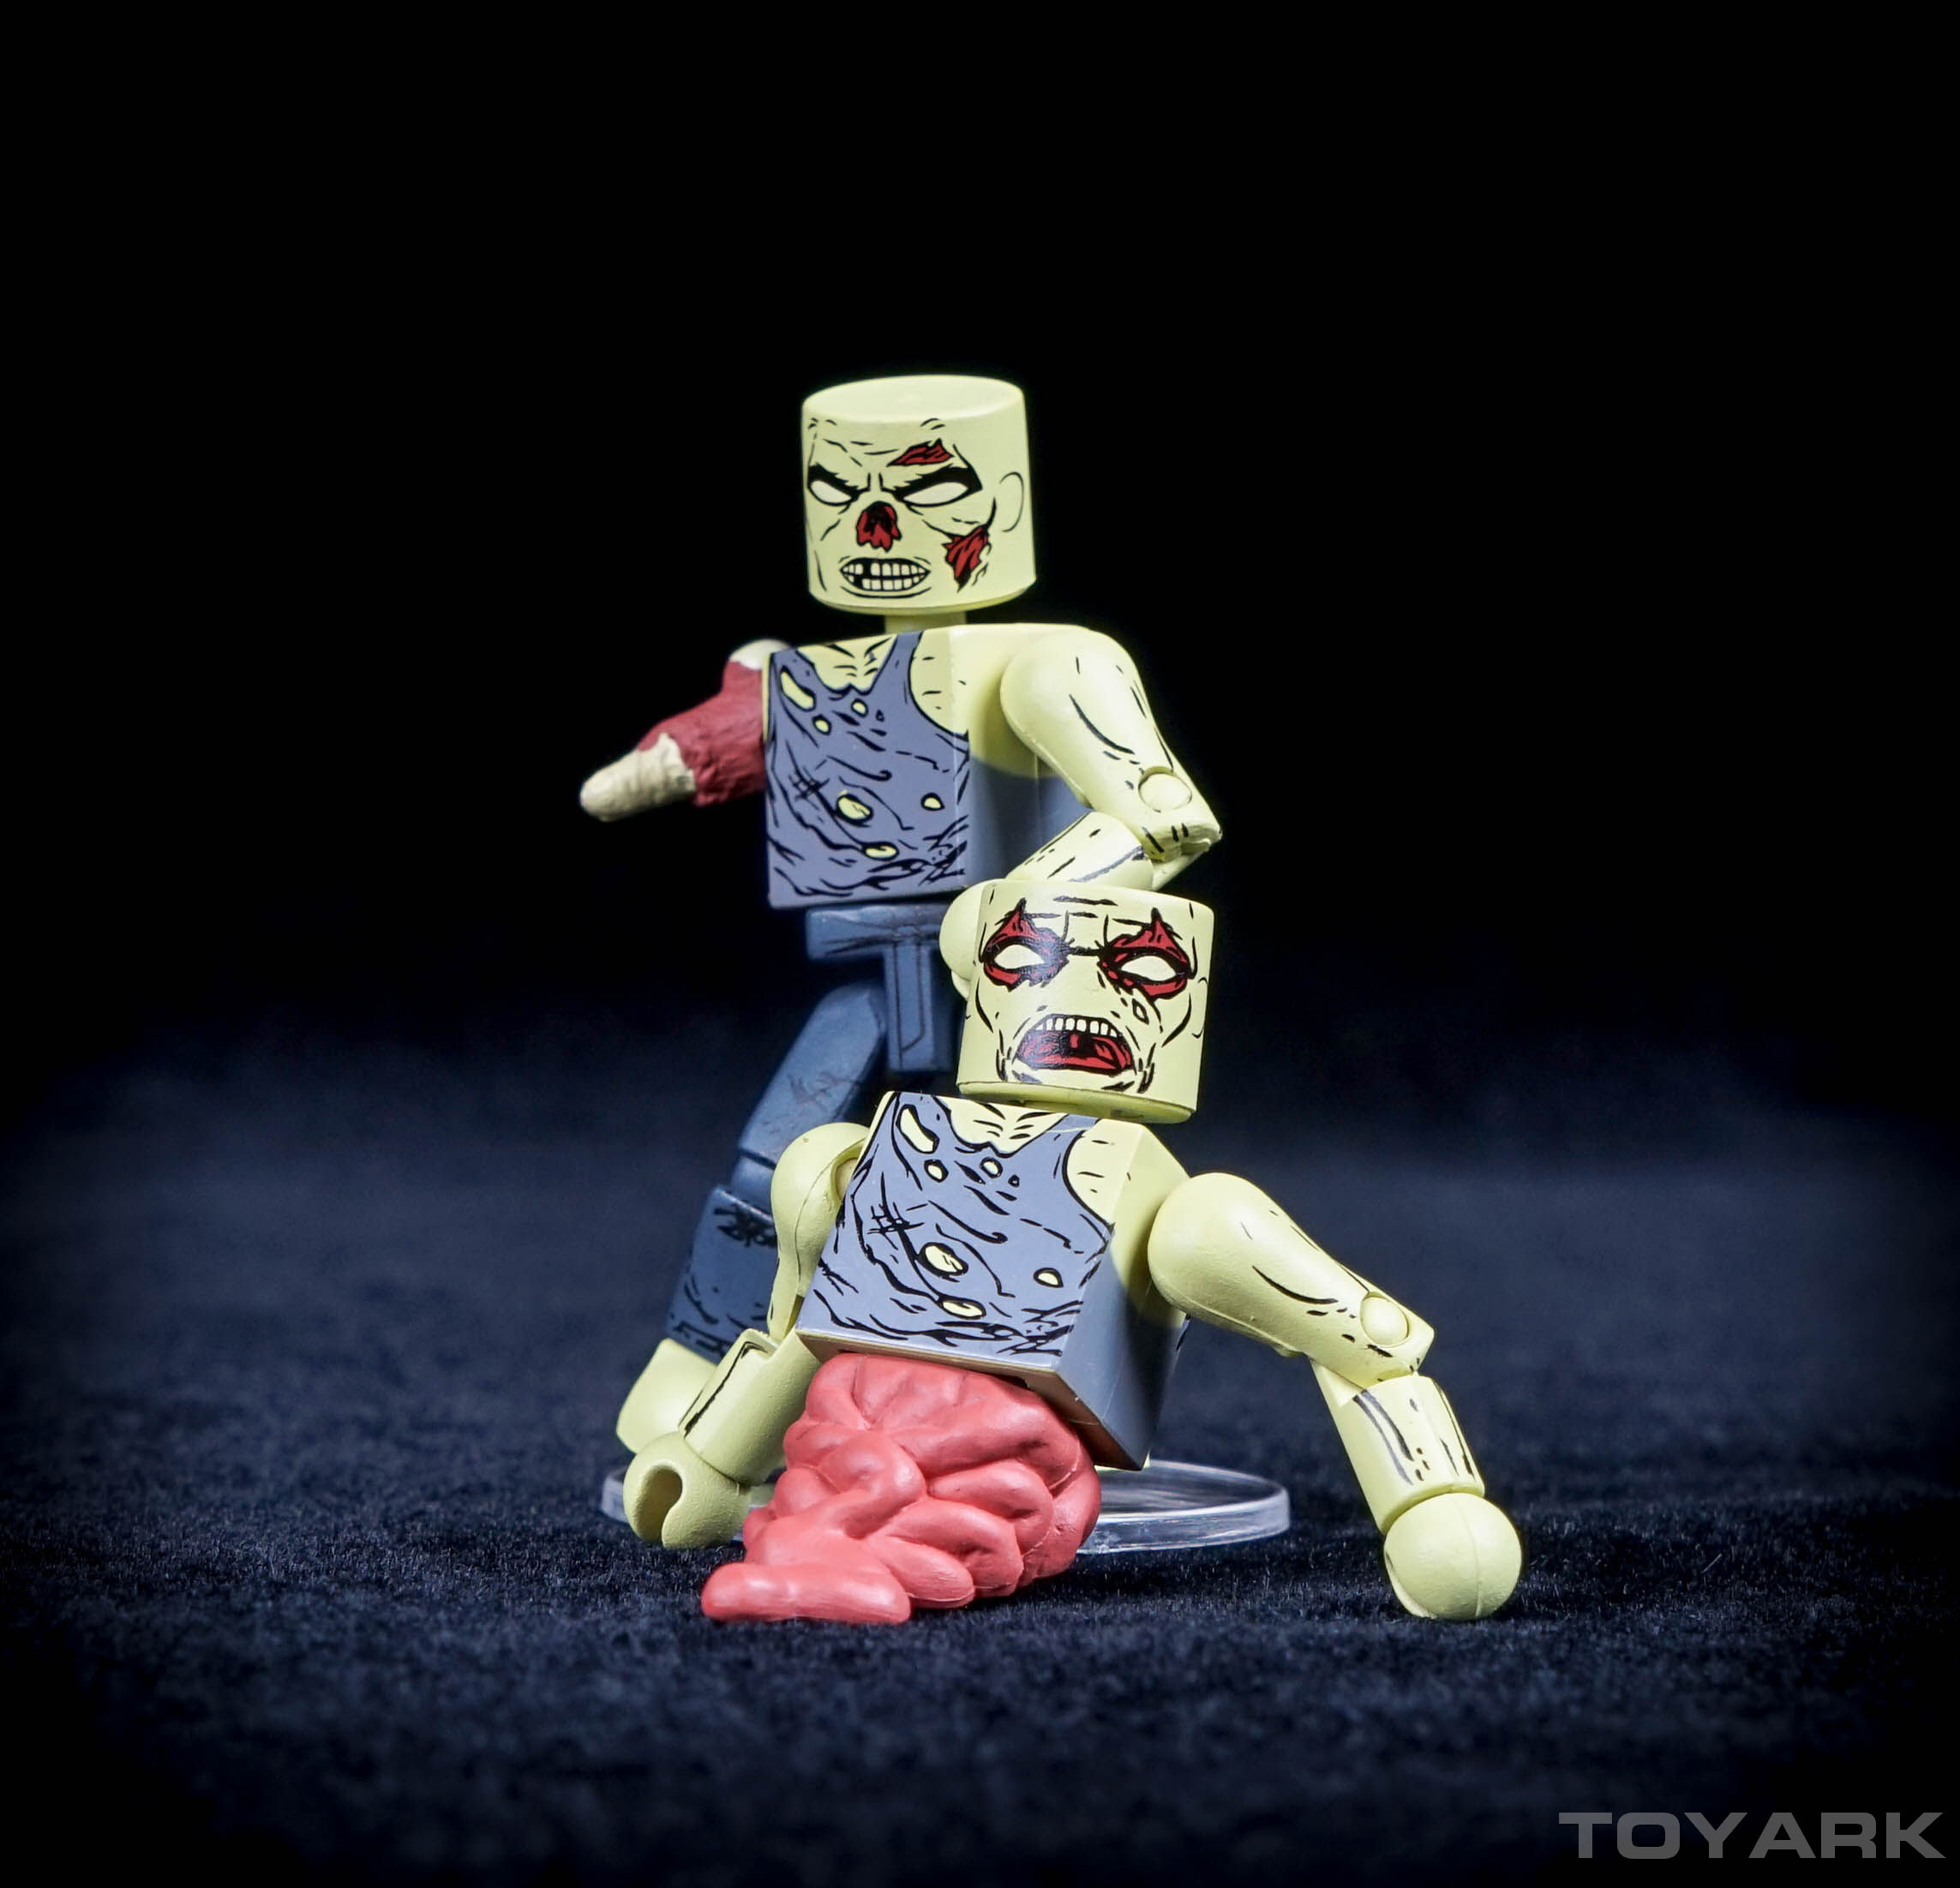 http://news.toyark.com/wp-content/uploads/sites/4/2015/11/Walking-Dead-S8-Minimates-096.jpg